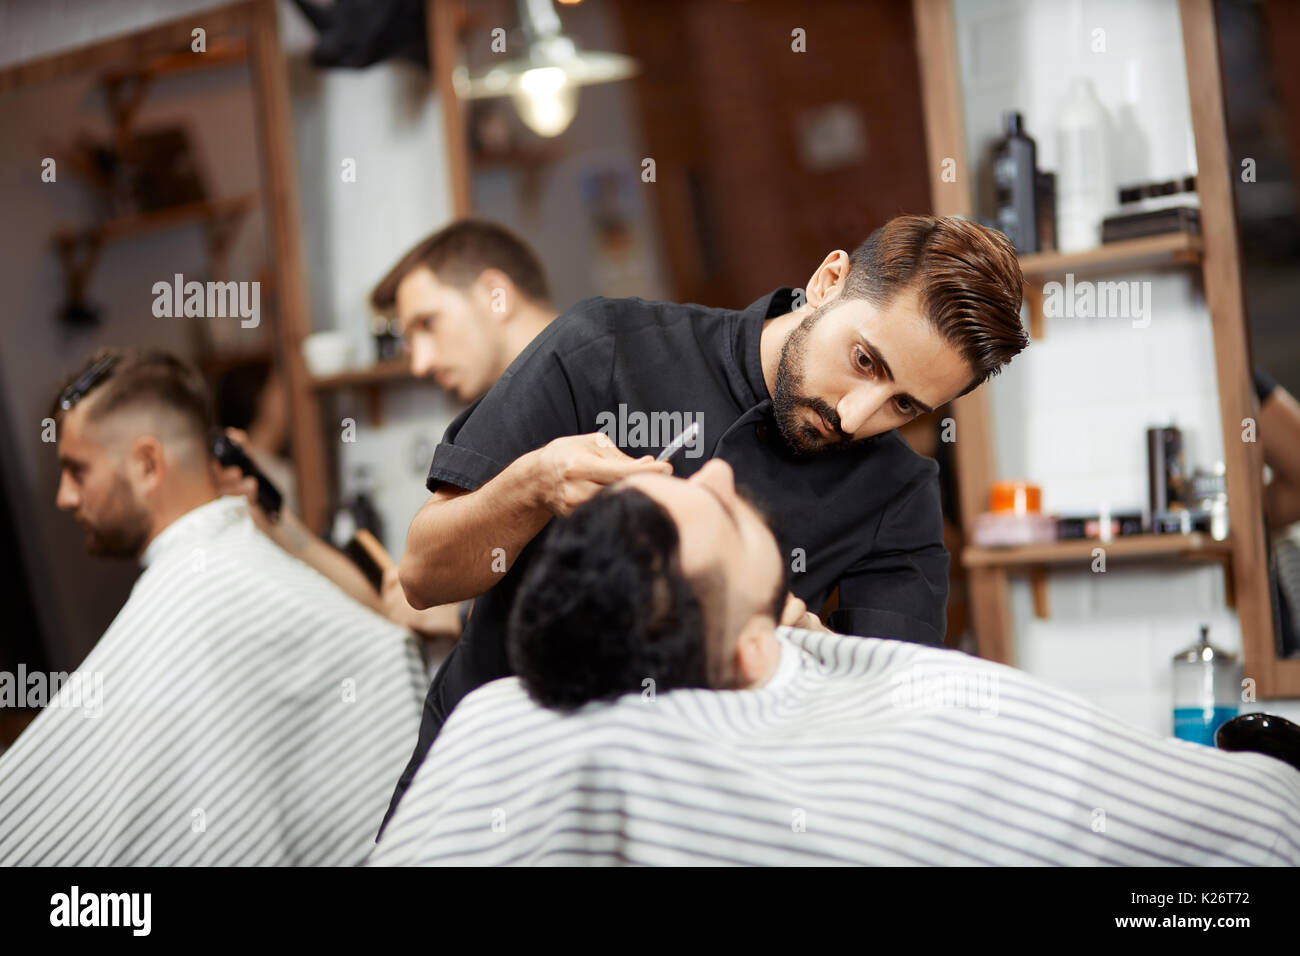 Two stylists cutting bread, making haircut for clients in barber shop. - Stock Image